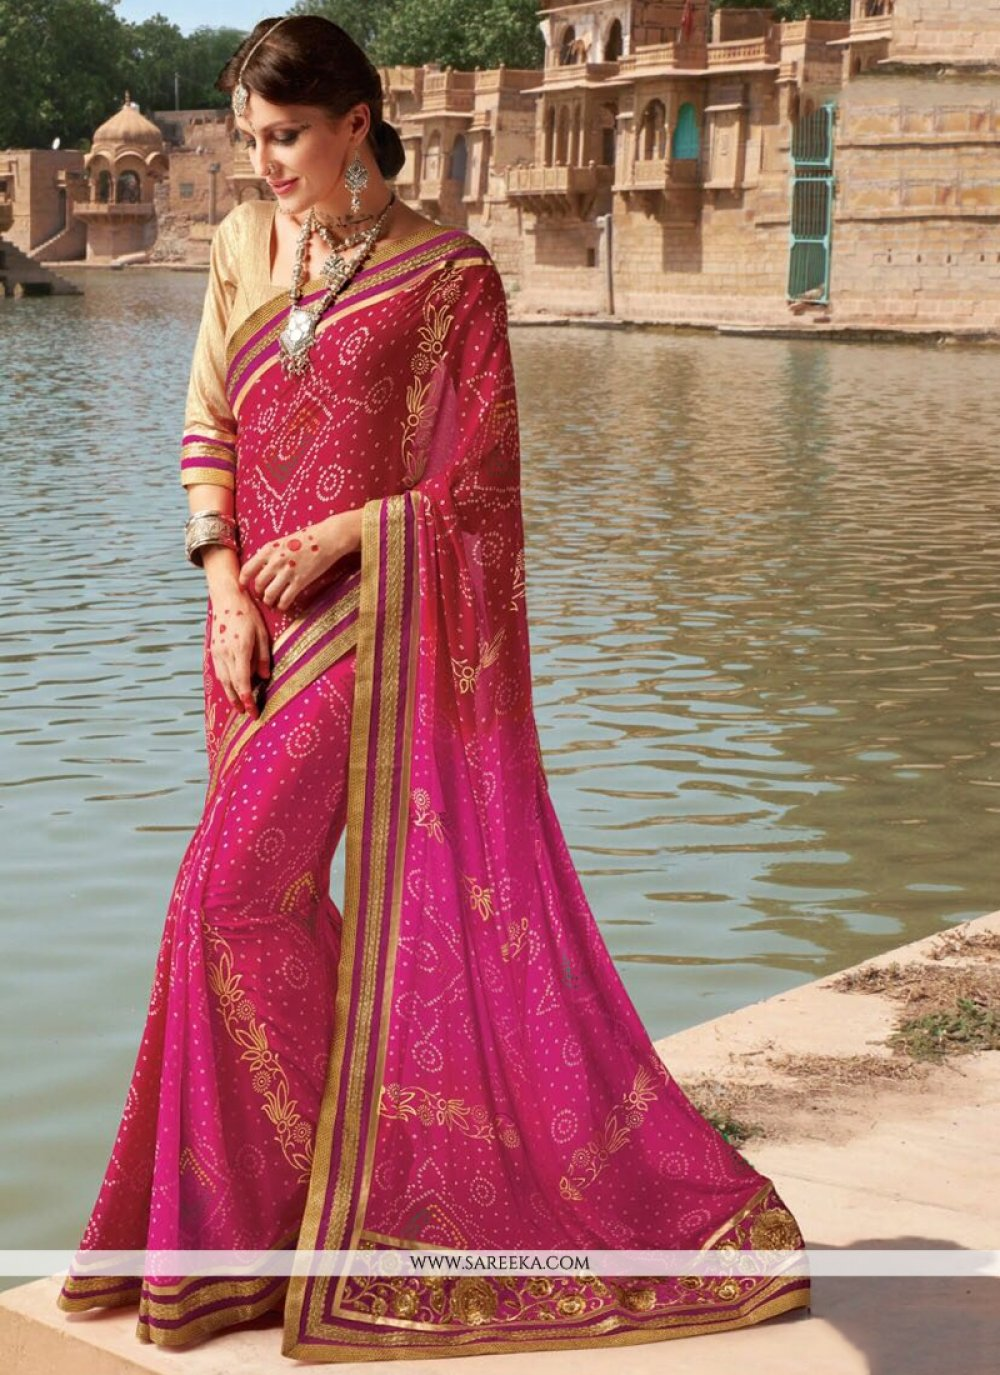 Hot Pink and Red Lace Work Faux Georgette Printed Saree